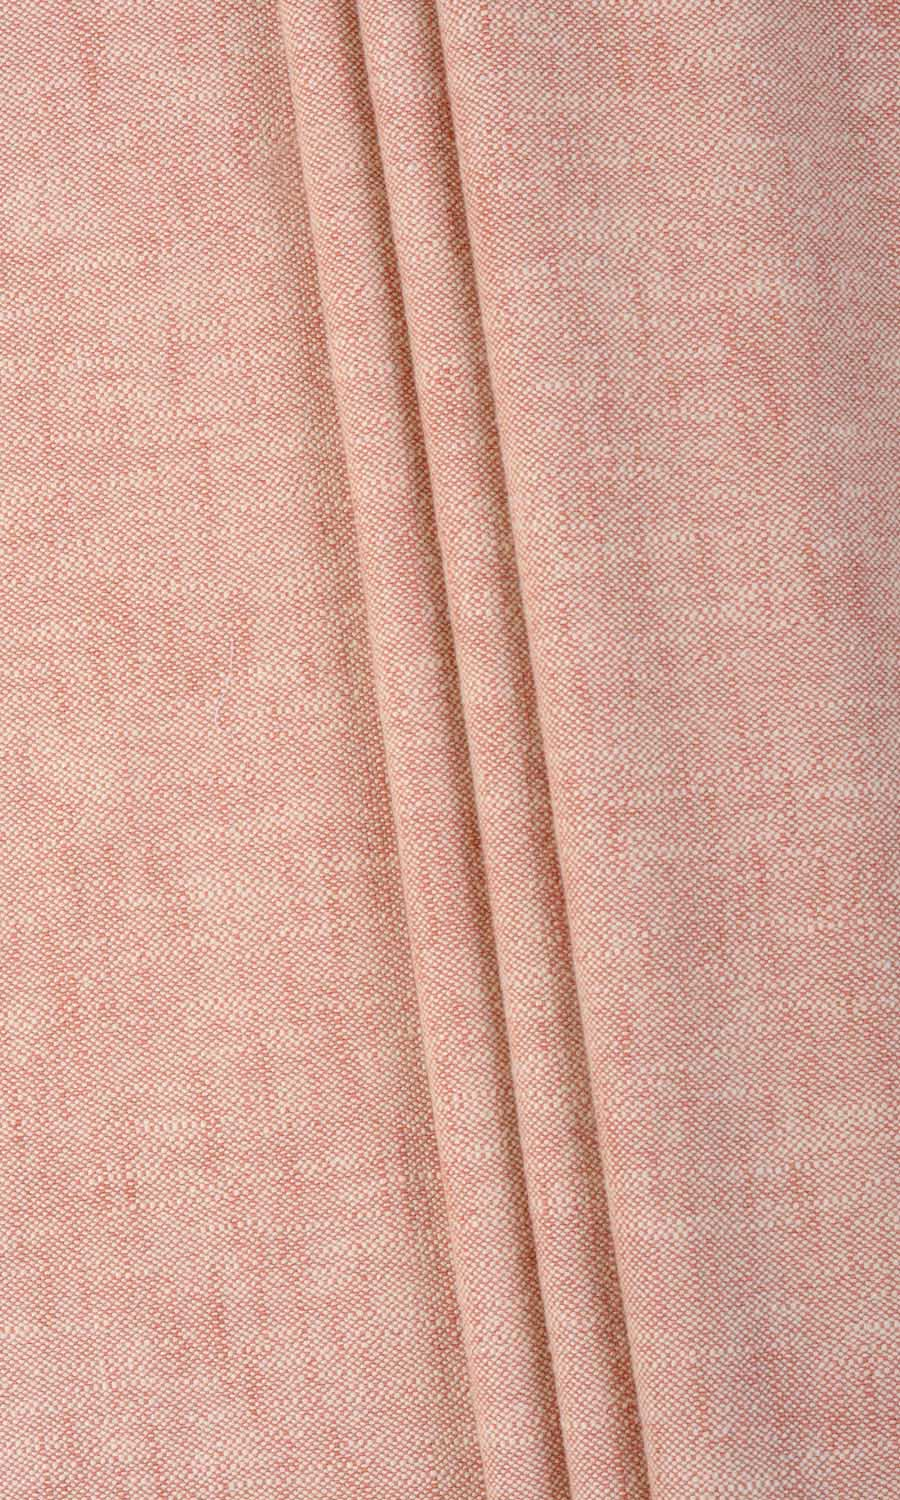 Pink Cotton Custom Roman Blinds